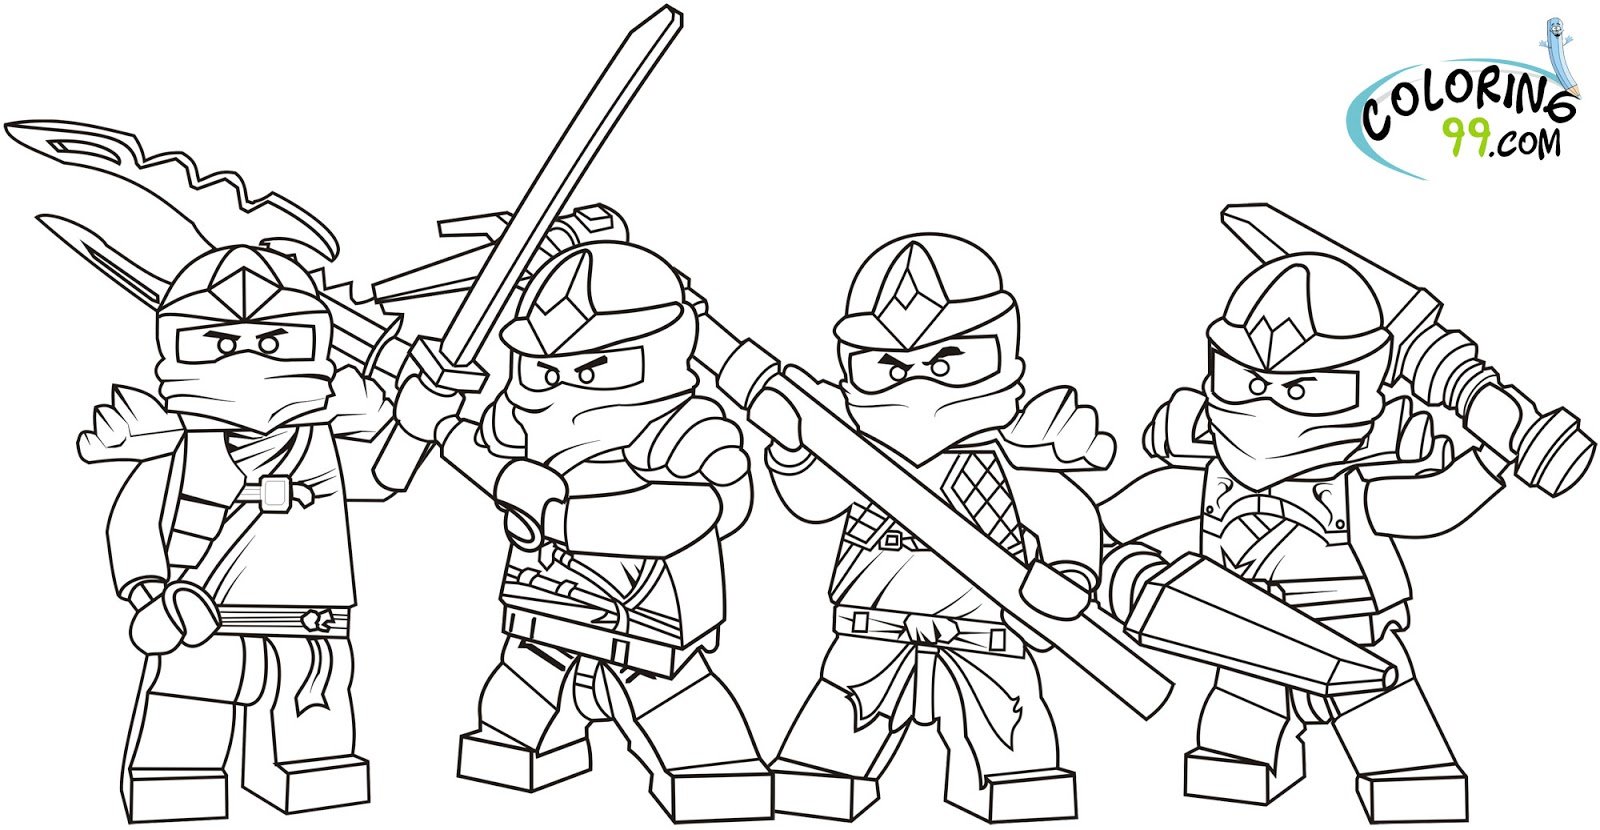 7 Images of LEGO Ninjago Coloring Pages Printable Free